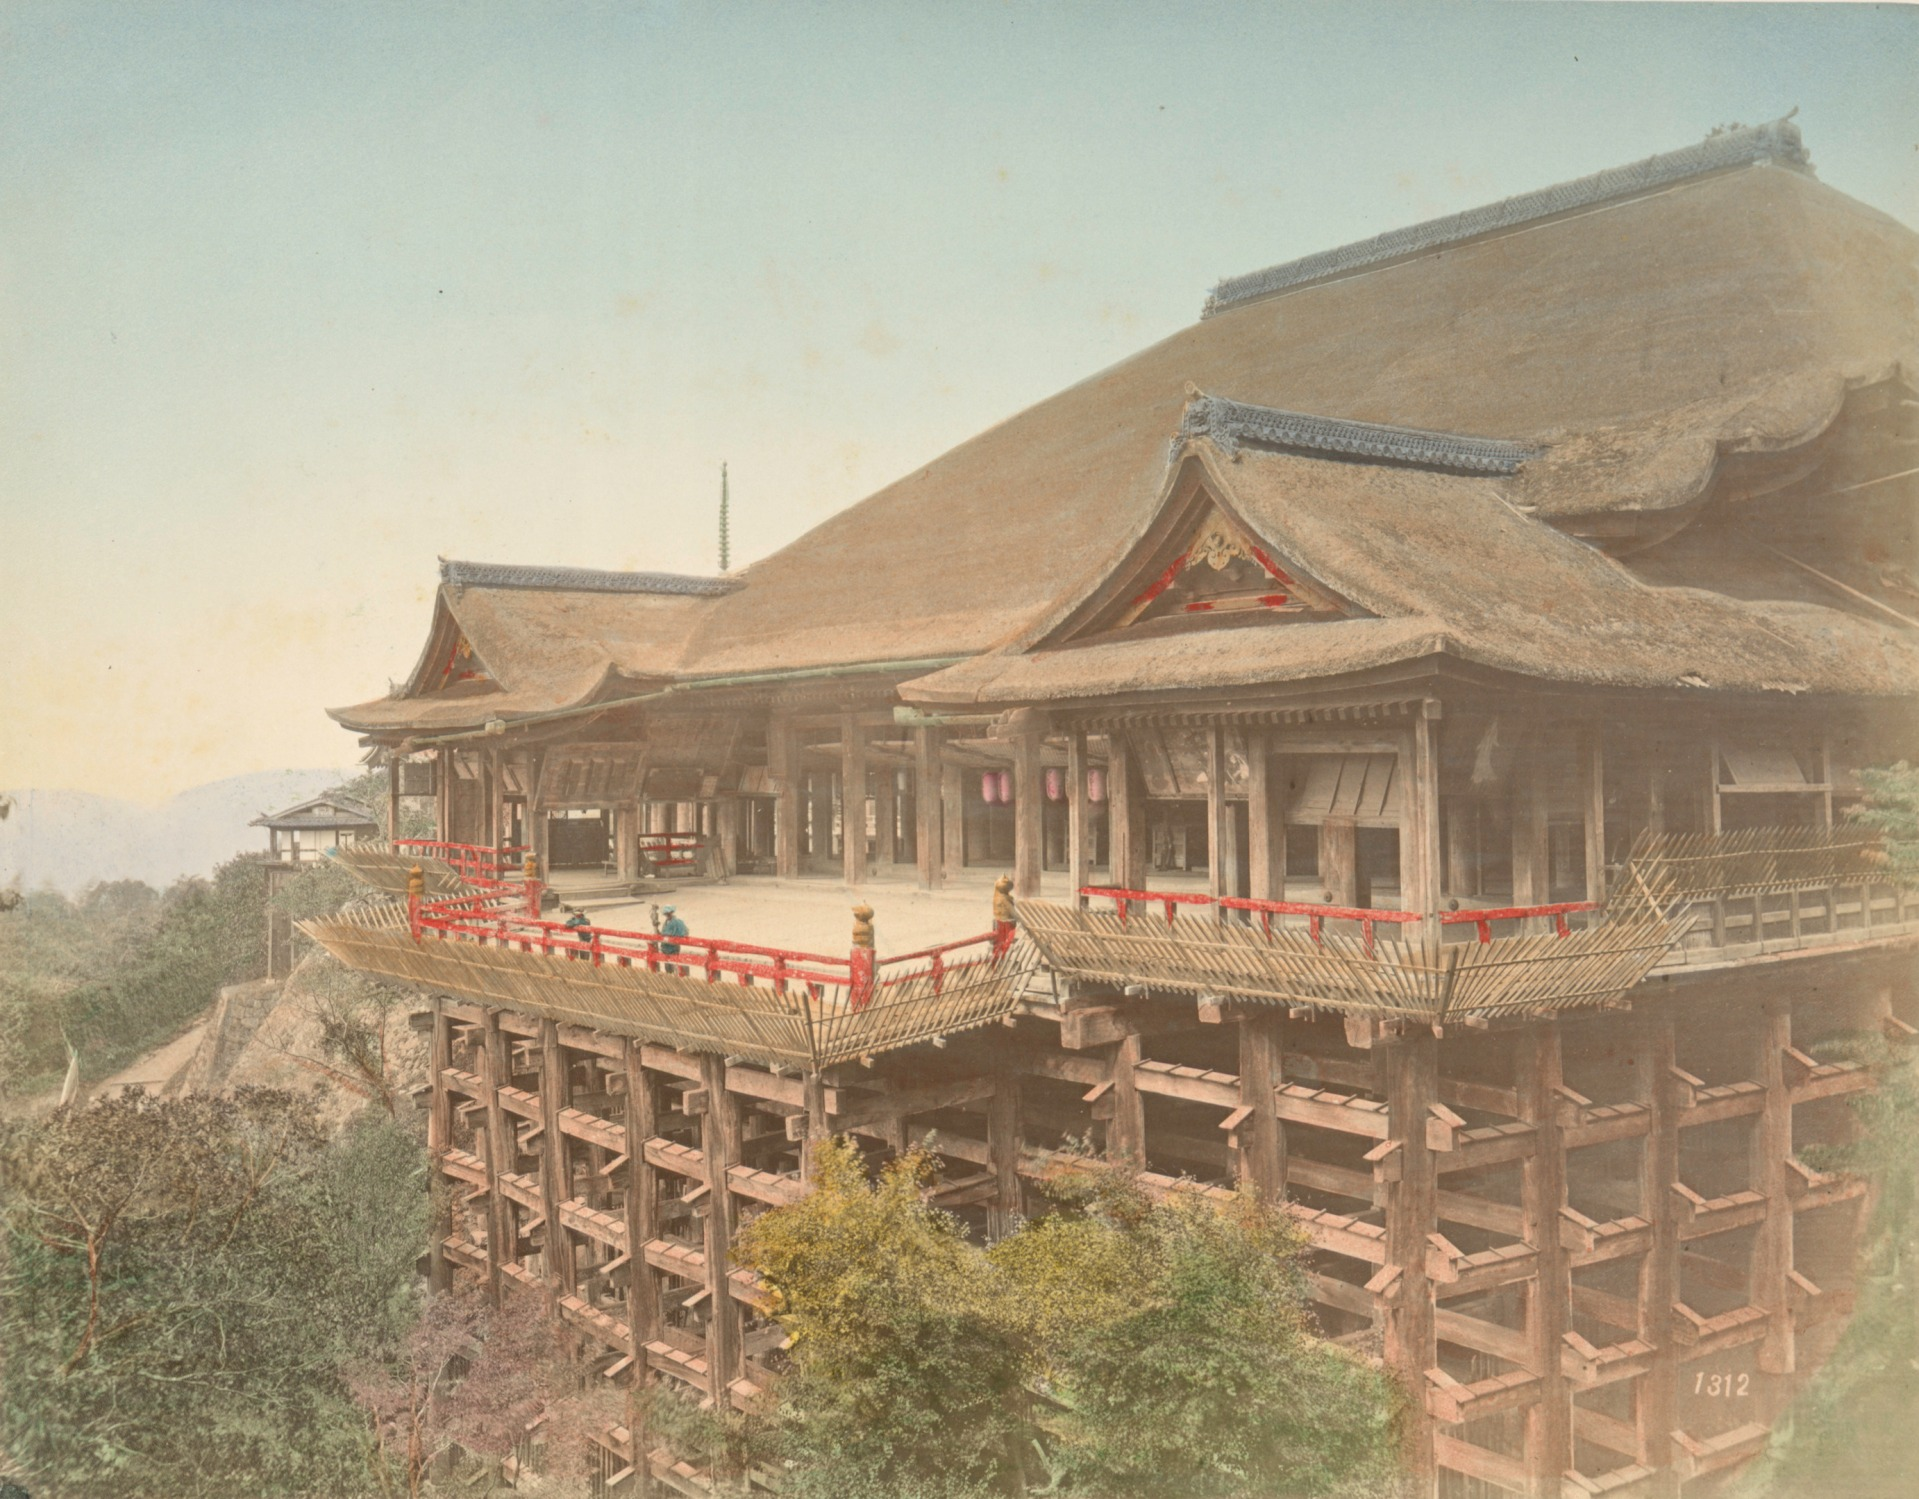 日下部金兵衛,《京都清水寺》,1890-1899年。蛋白相紙手工上色。(紐約公共圖書館藏) The Miriam and Ira D. Wallach Division of Art, Prints and Photographs Photography Collection, The New York Public Library